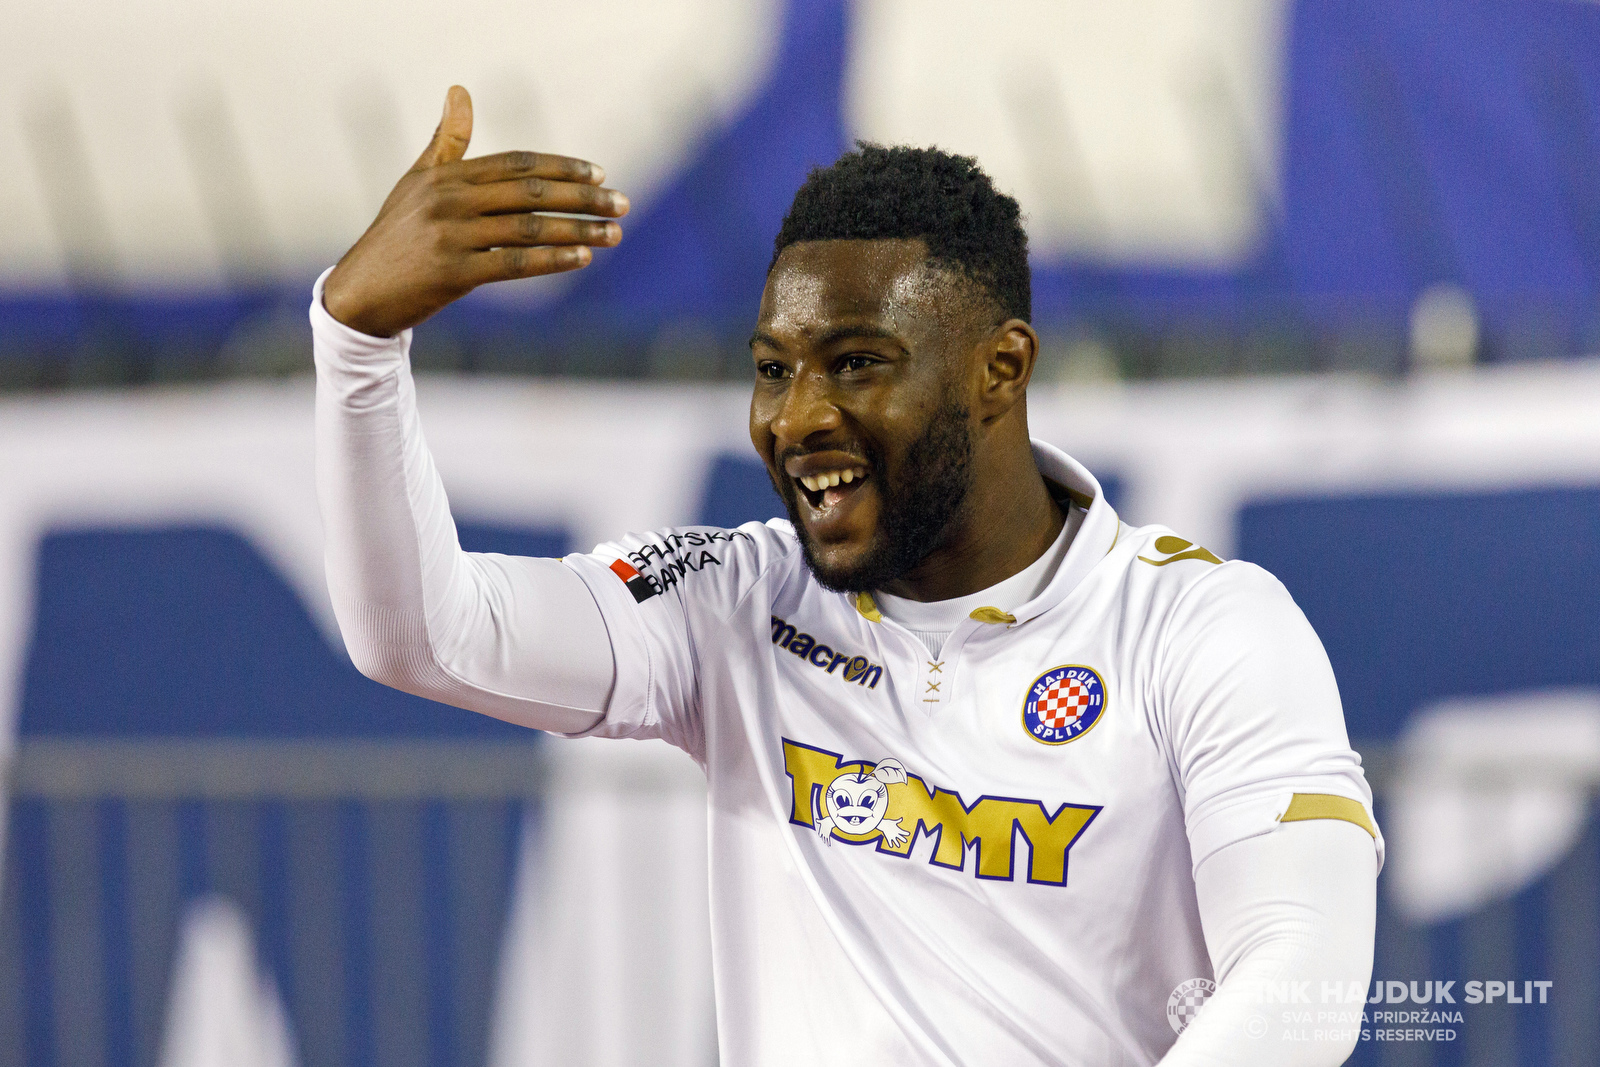 Ghanaian forward Said Ahmed Said to work under new coach at Croatian side HNK Hajduk Split